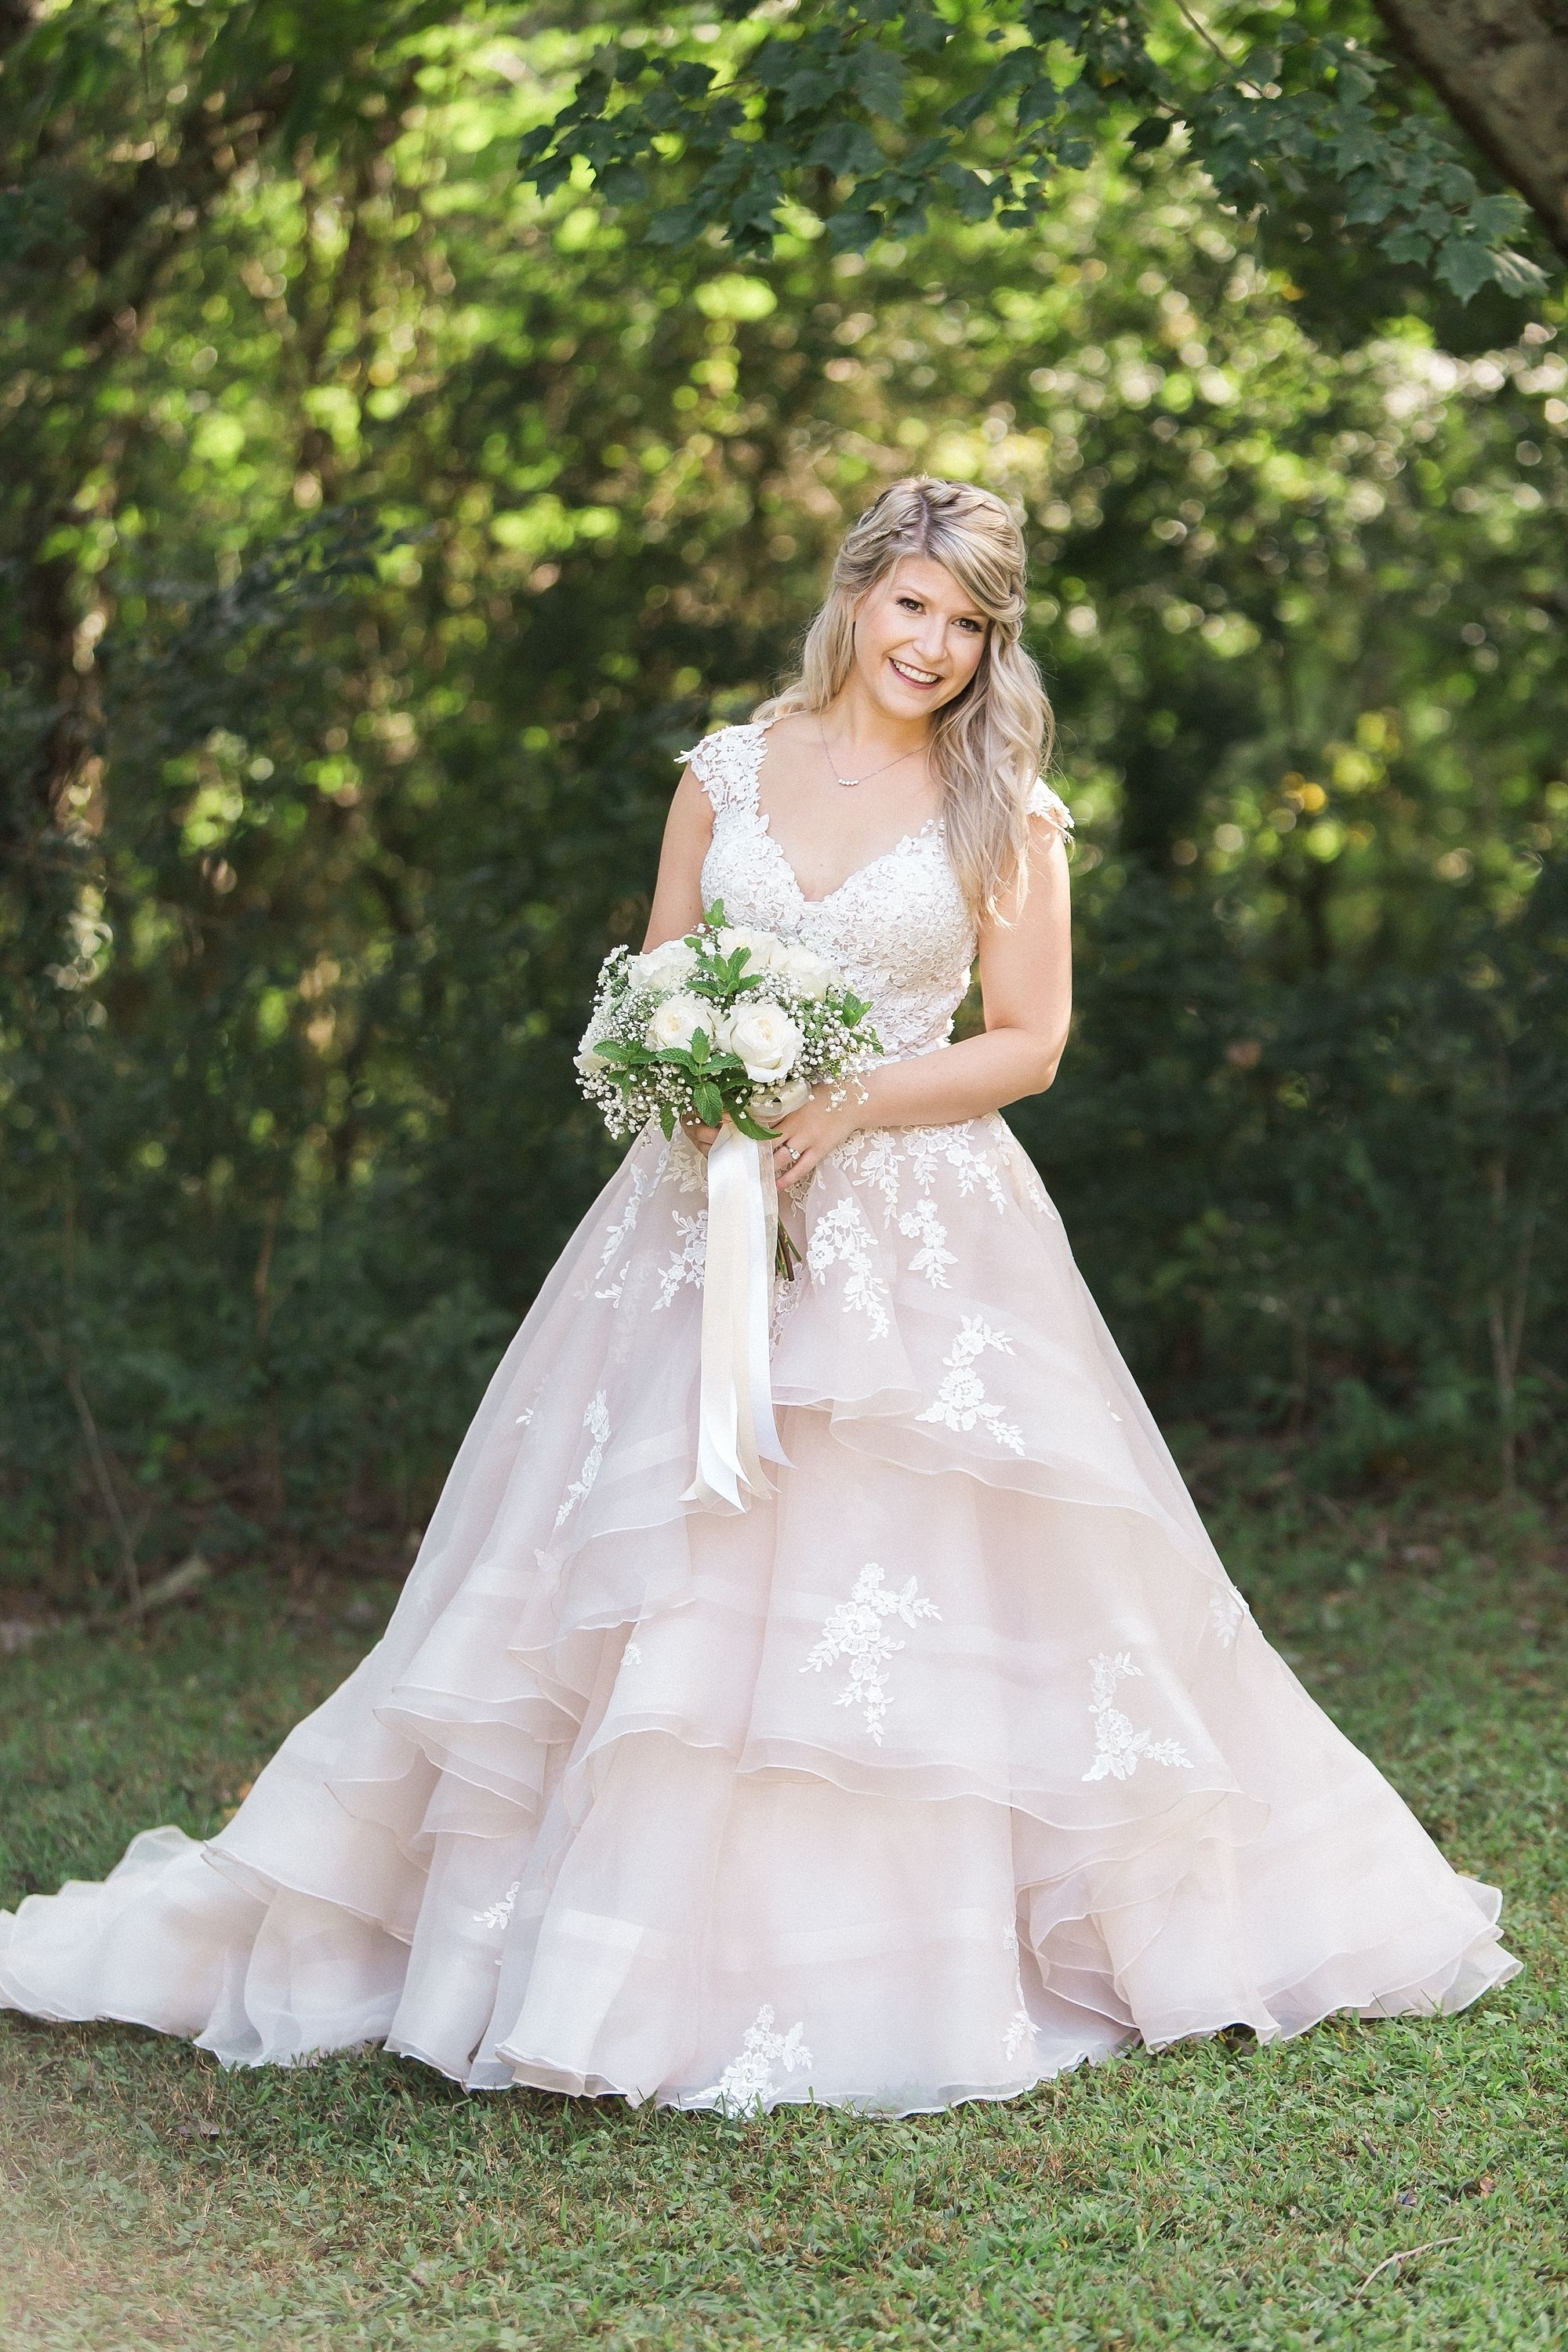 Gorgeous Bride, The Perfect Blush And Champagne Wedding Gown intended for Backyard Garden Wedding Dress